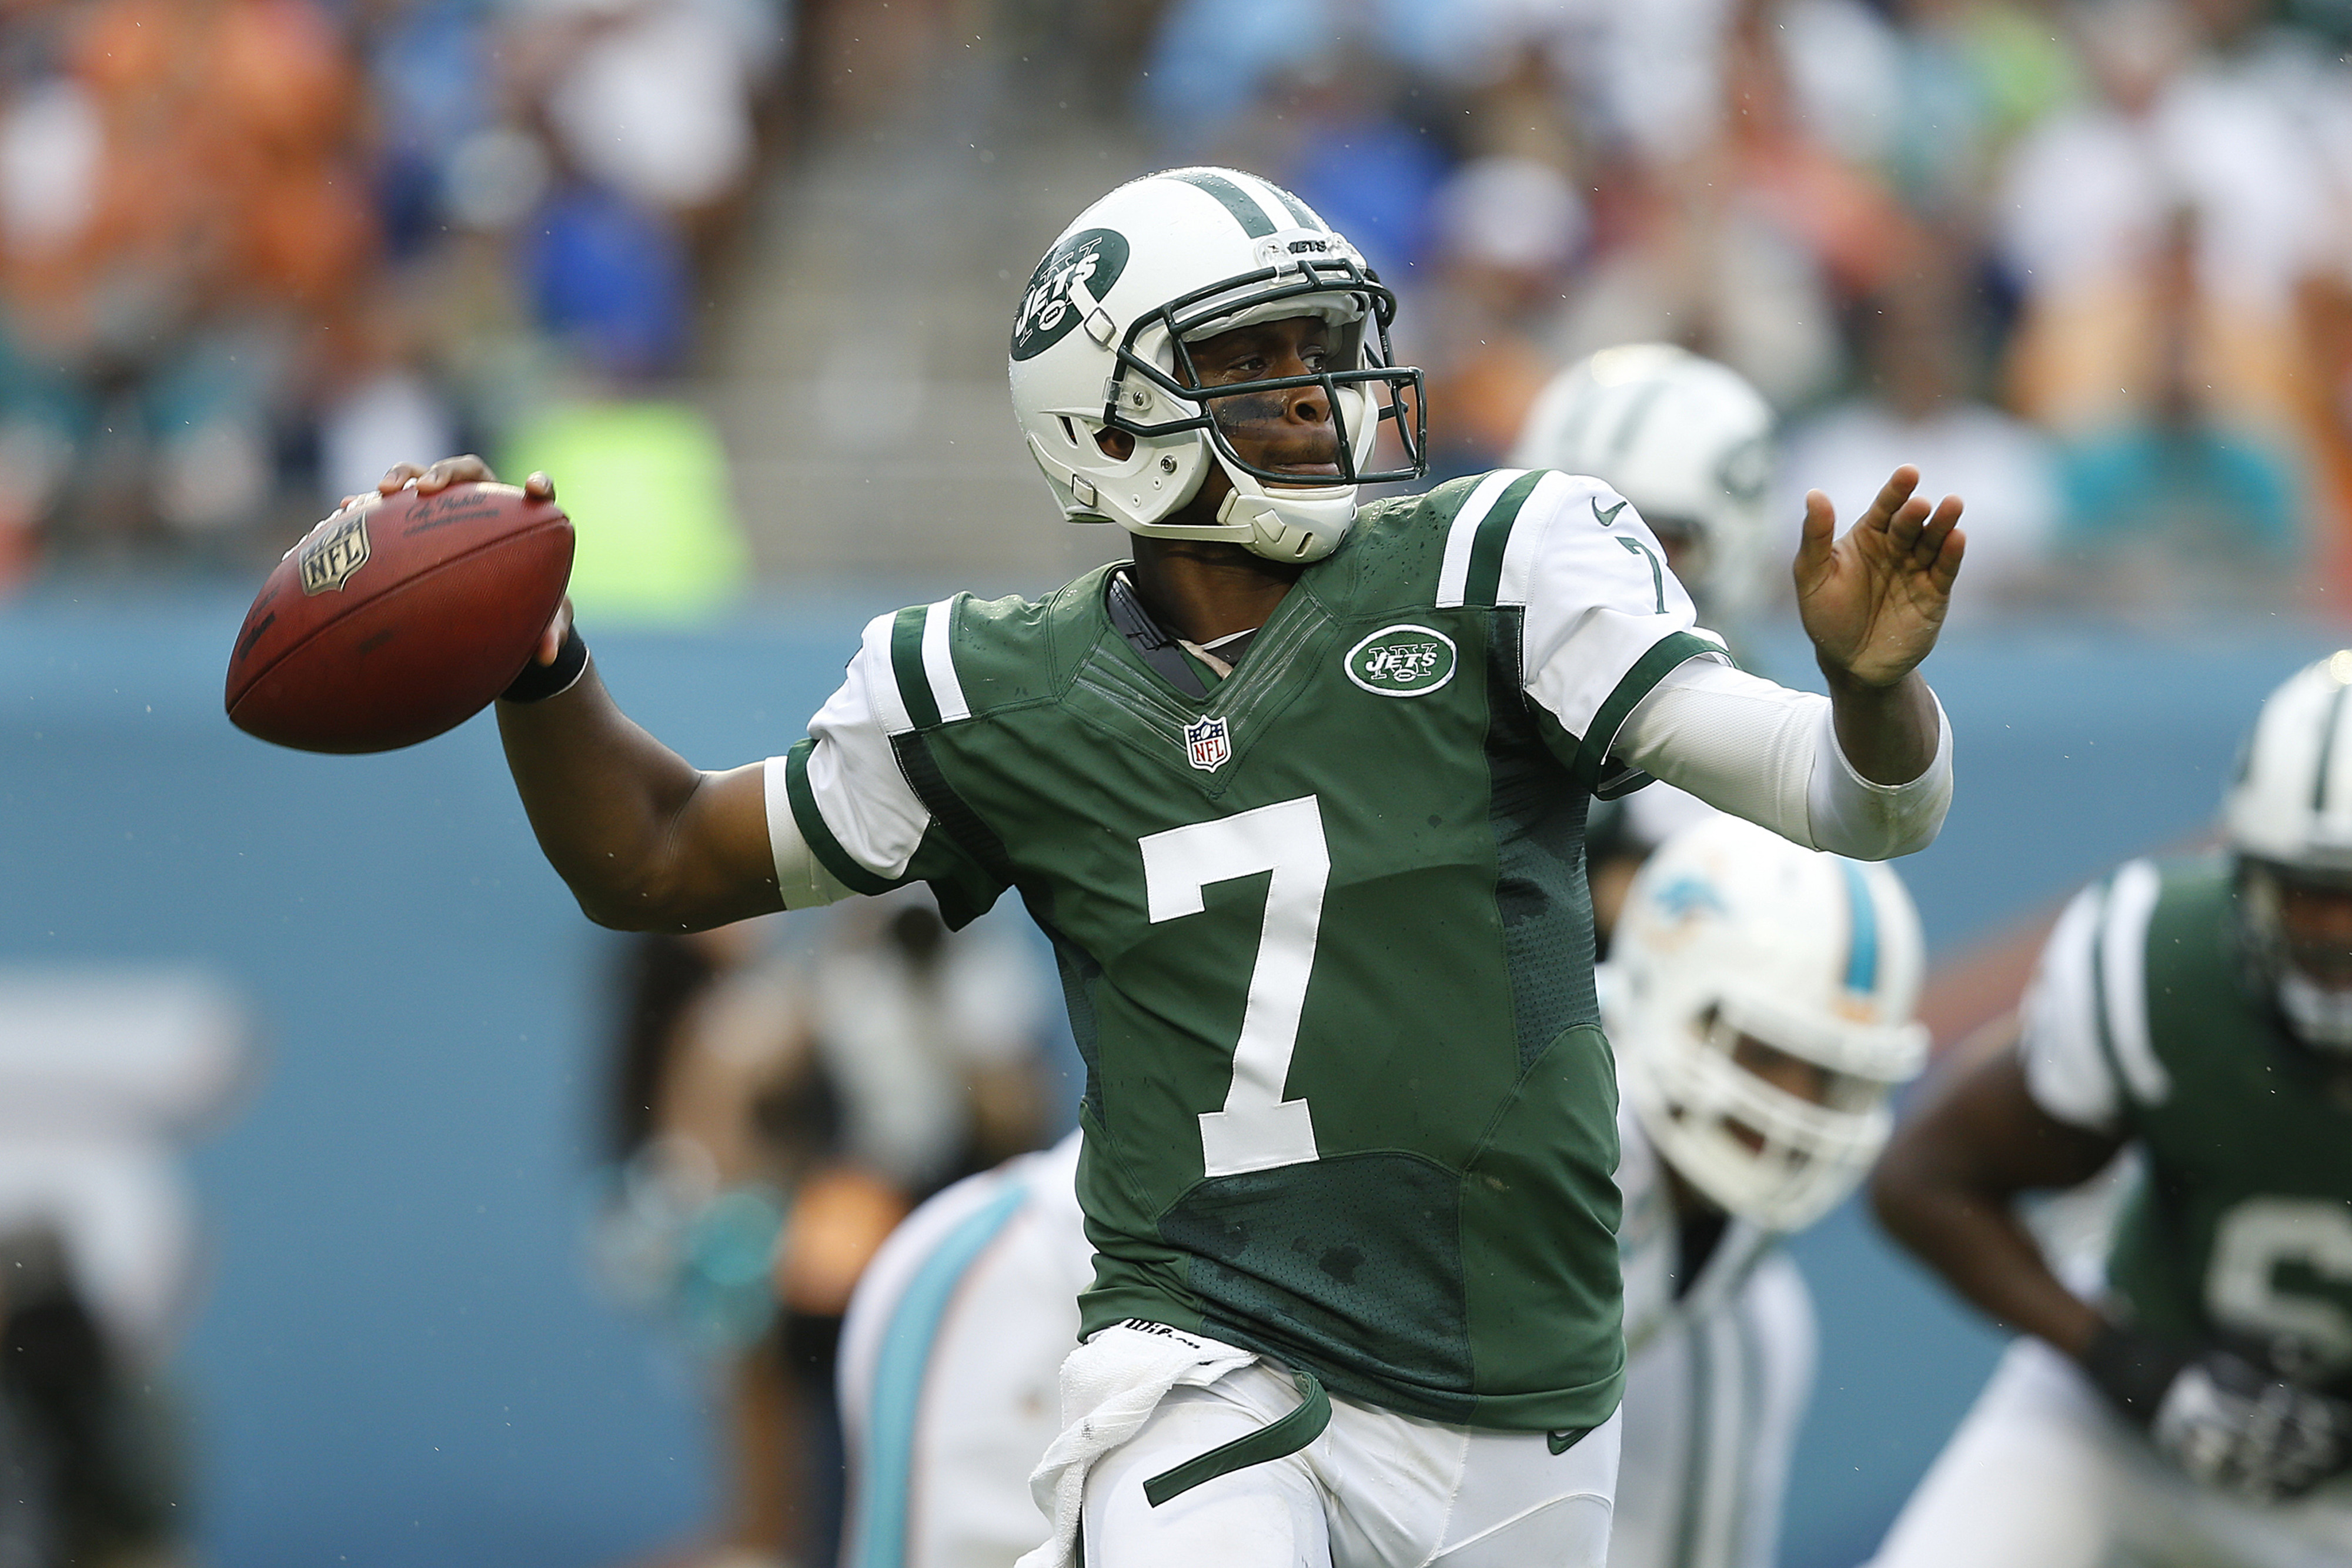 Geno Smith, if he plays the entire season, has the tools around him to succeed.